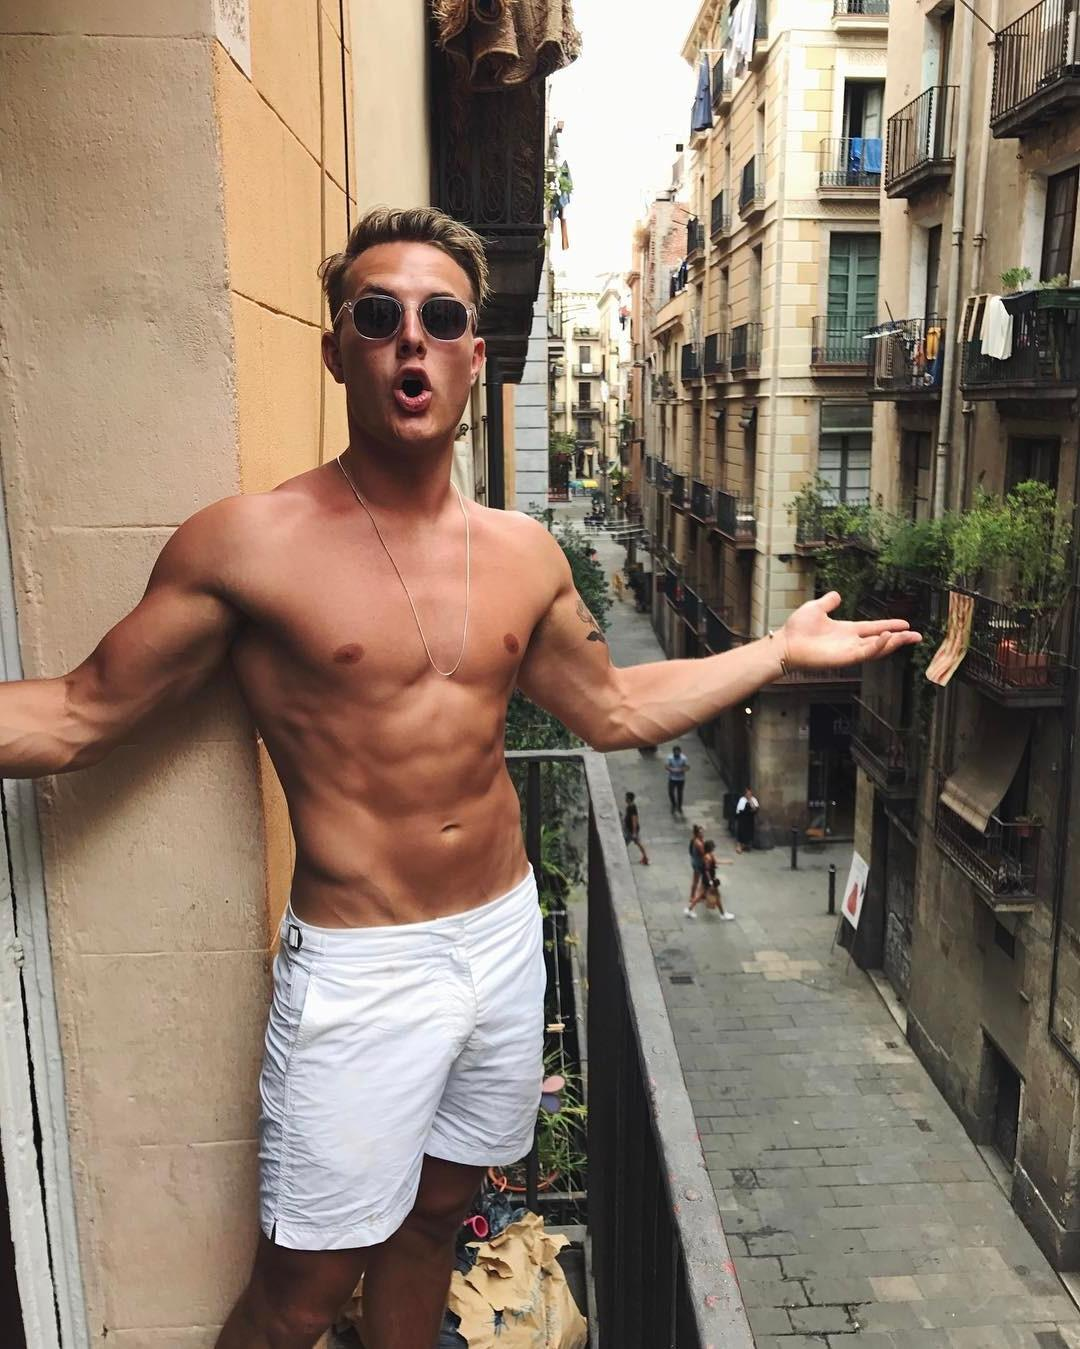 shirtless-fit-hipster-dudes-with-sunglasses